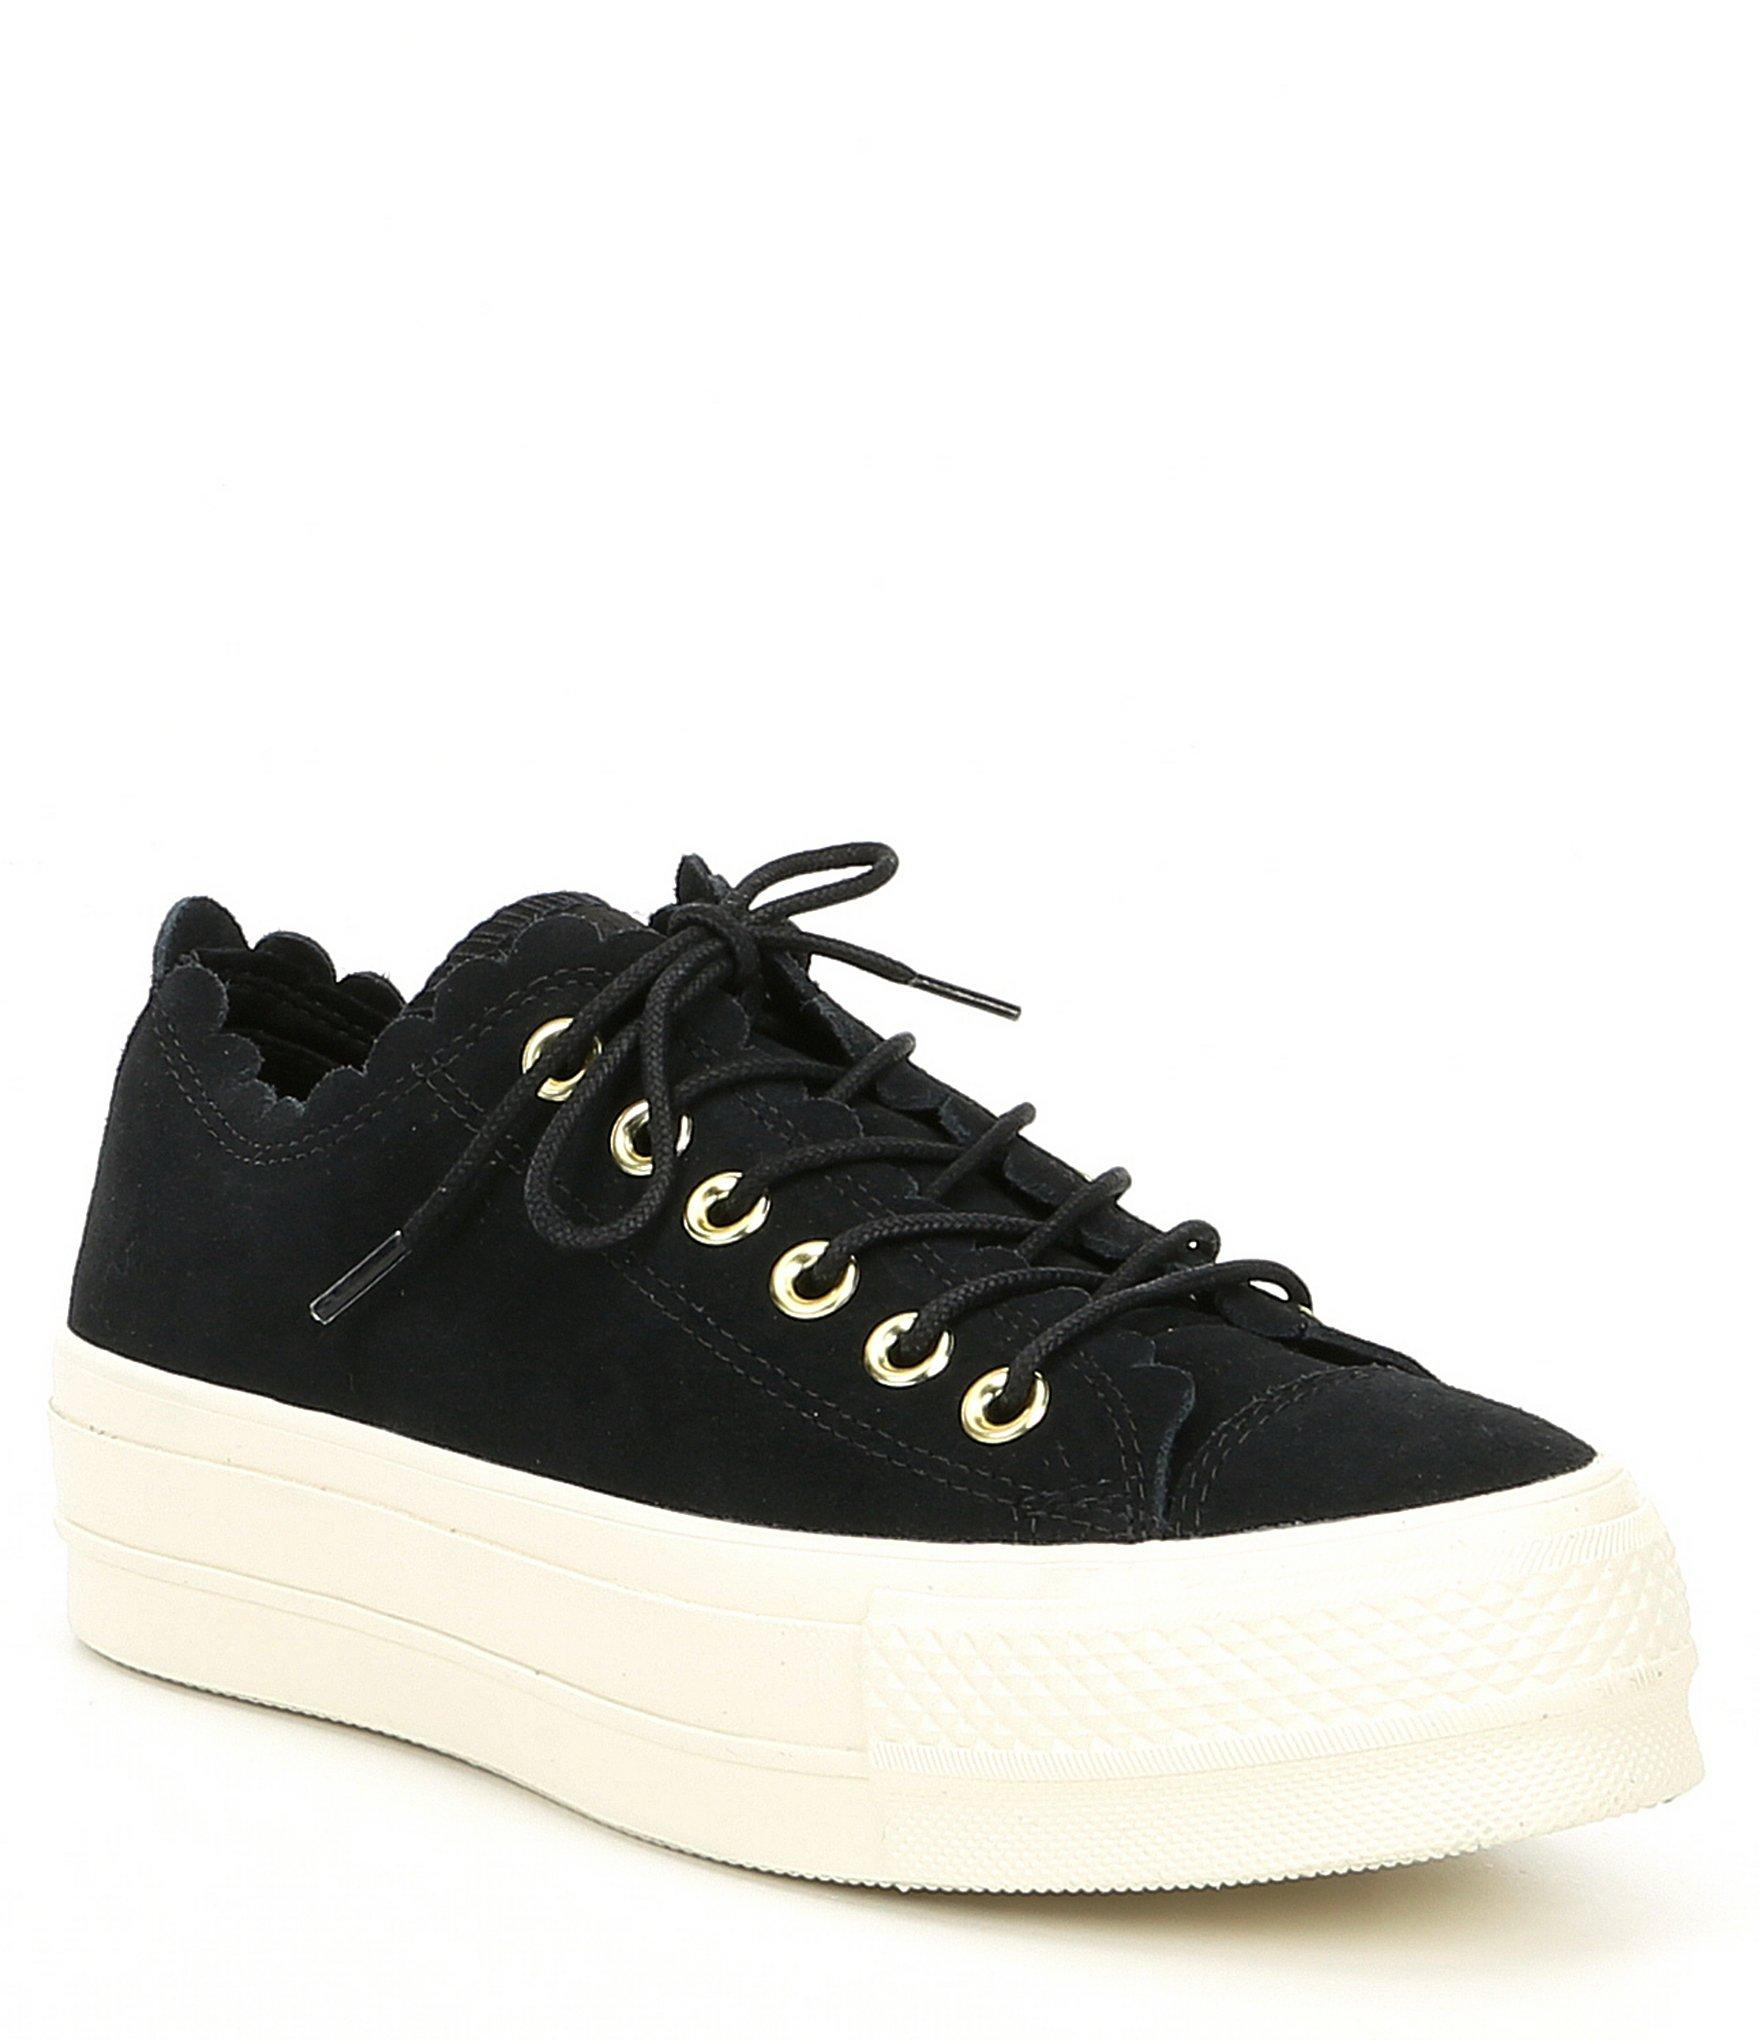 e8102ec99dd Converse. Black Women s Chuck Taylor All Star Frilly Thrills Platform  Sneakers